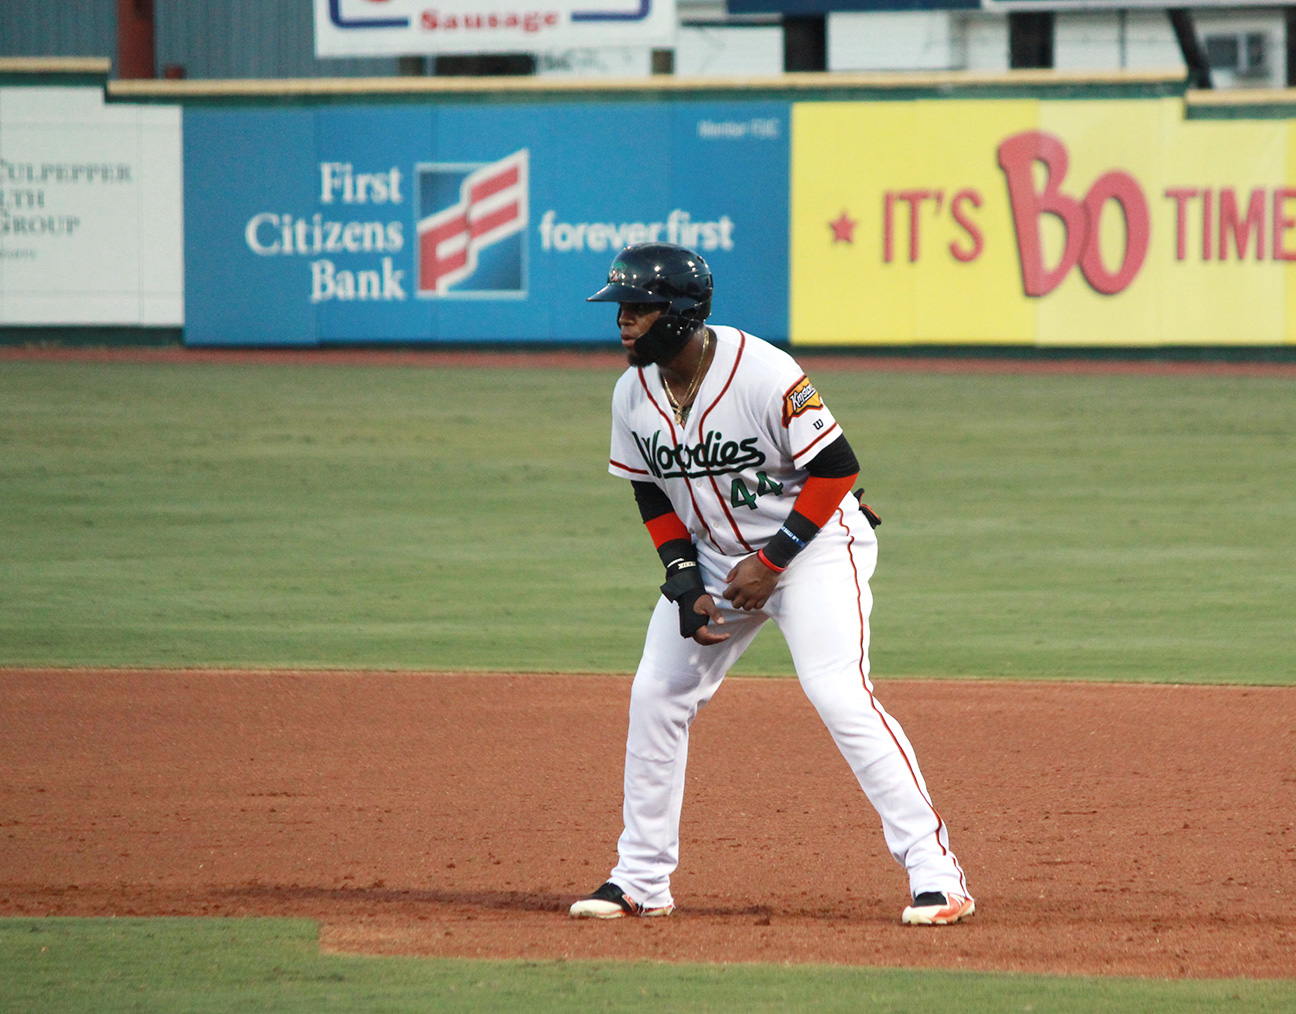 Yanio Perez has emerged as not only a fan favorite at Historic Grainger Stadium but as one of the team leaders. Photo by Linda Whittington / Neuse News